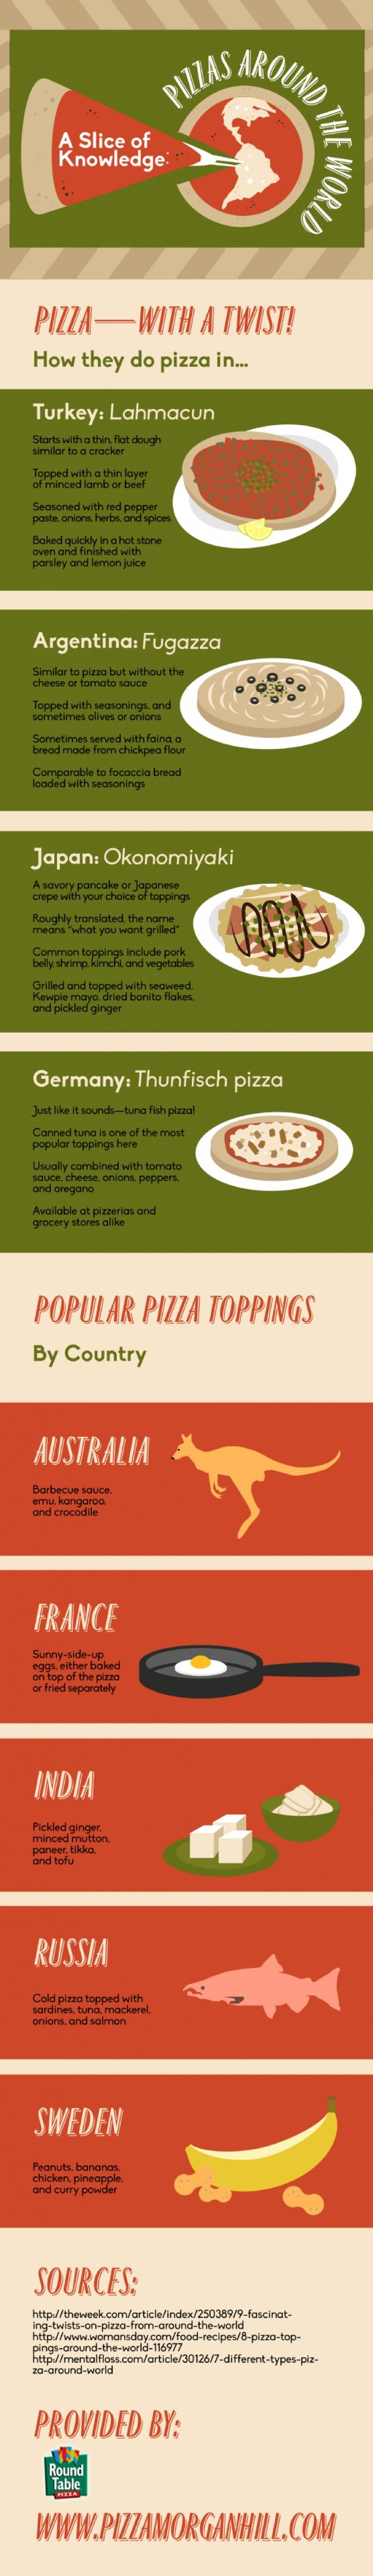 Pizza Toppings around the world